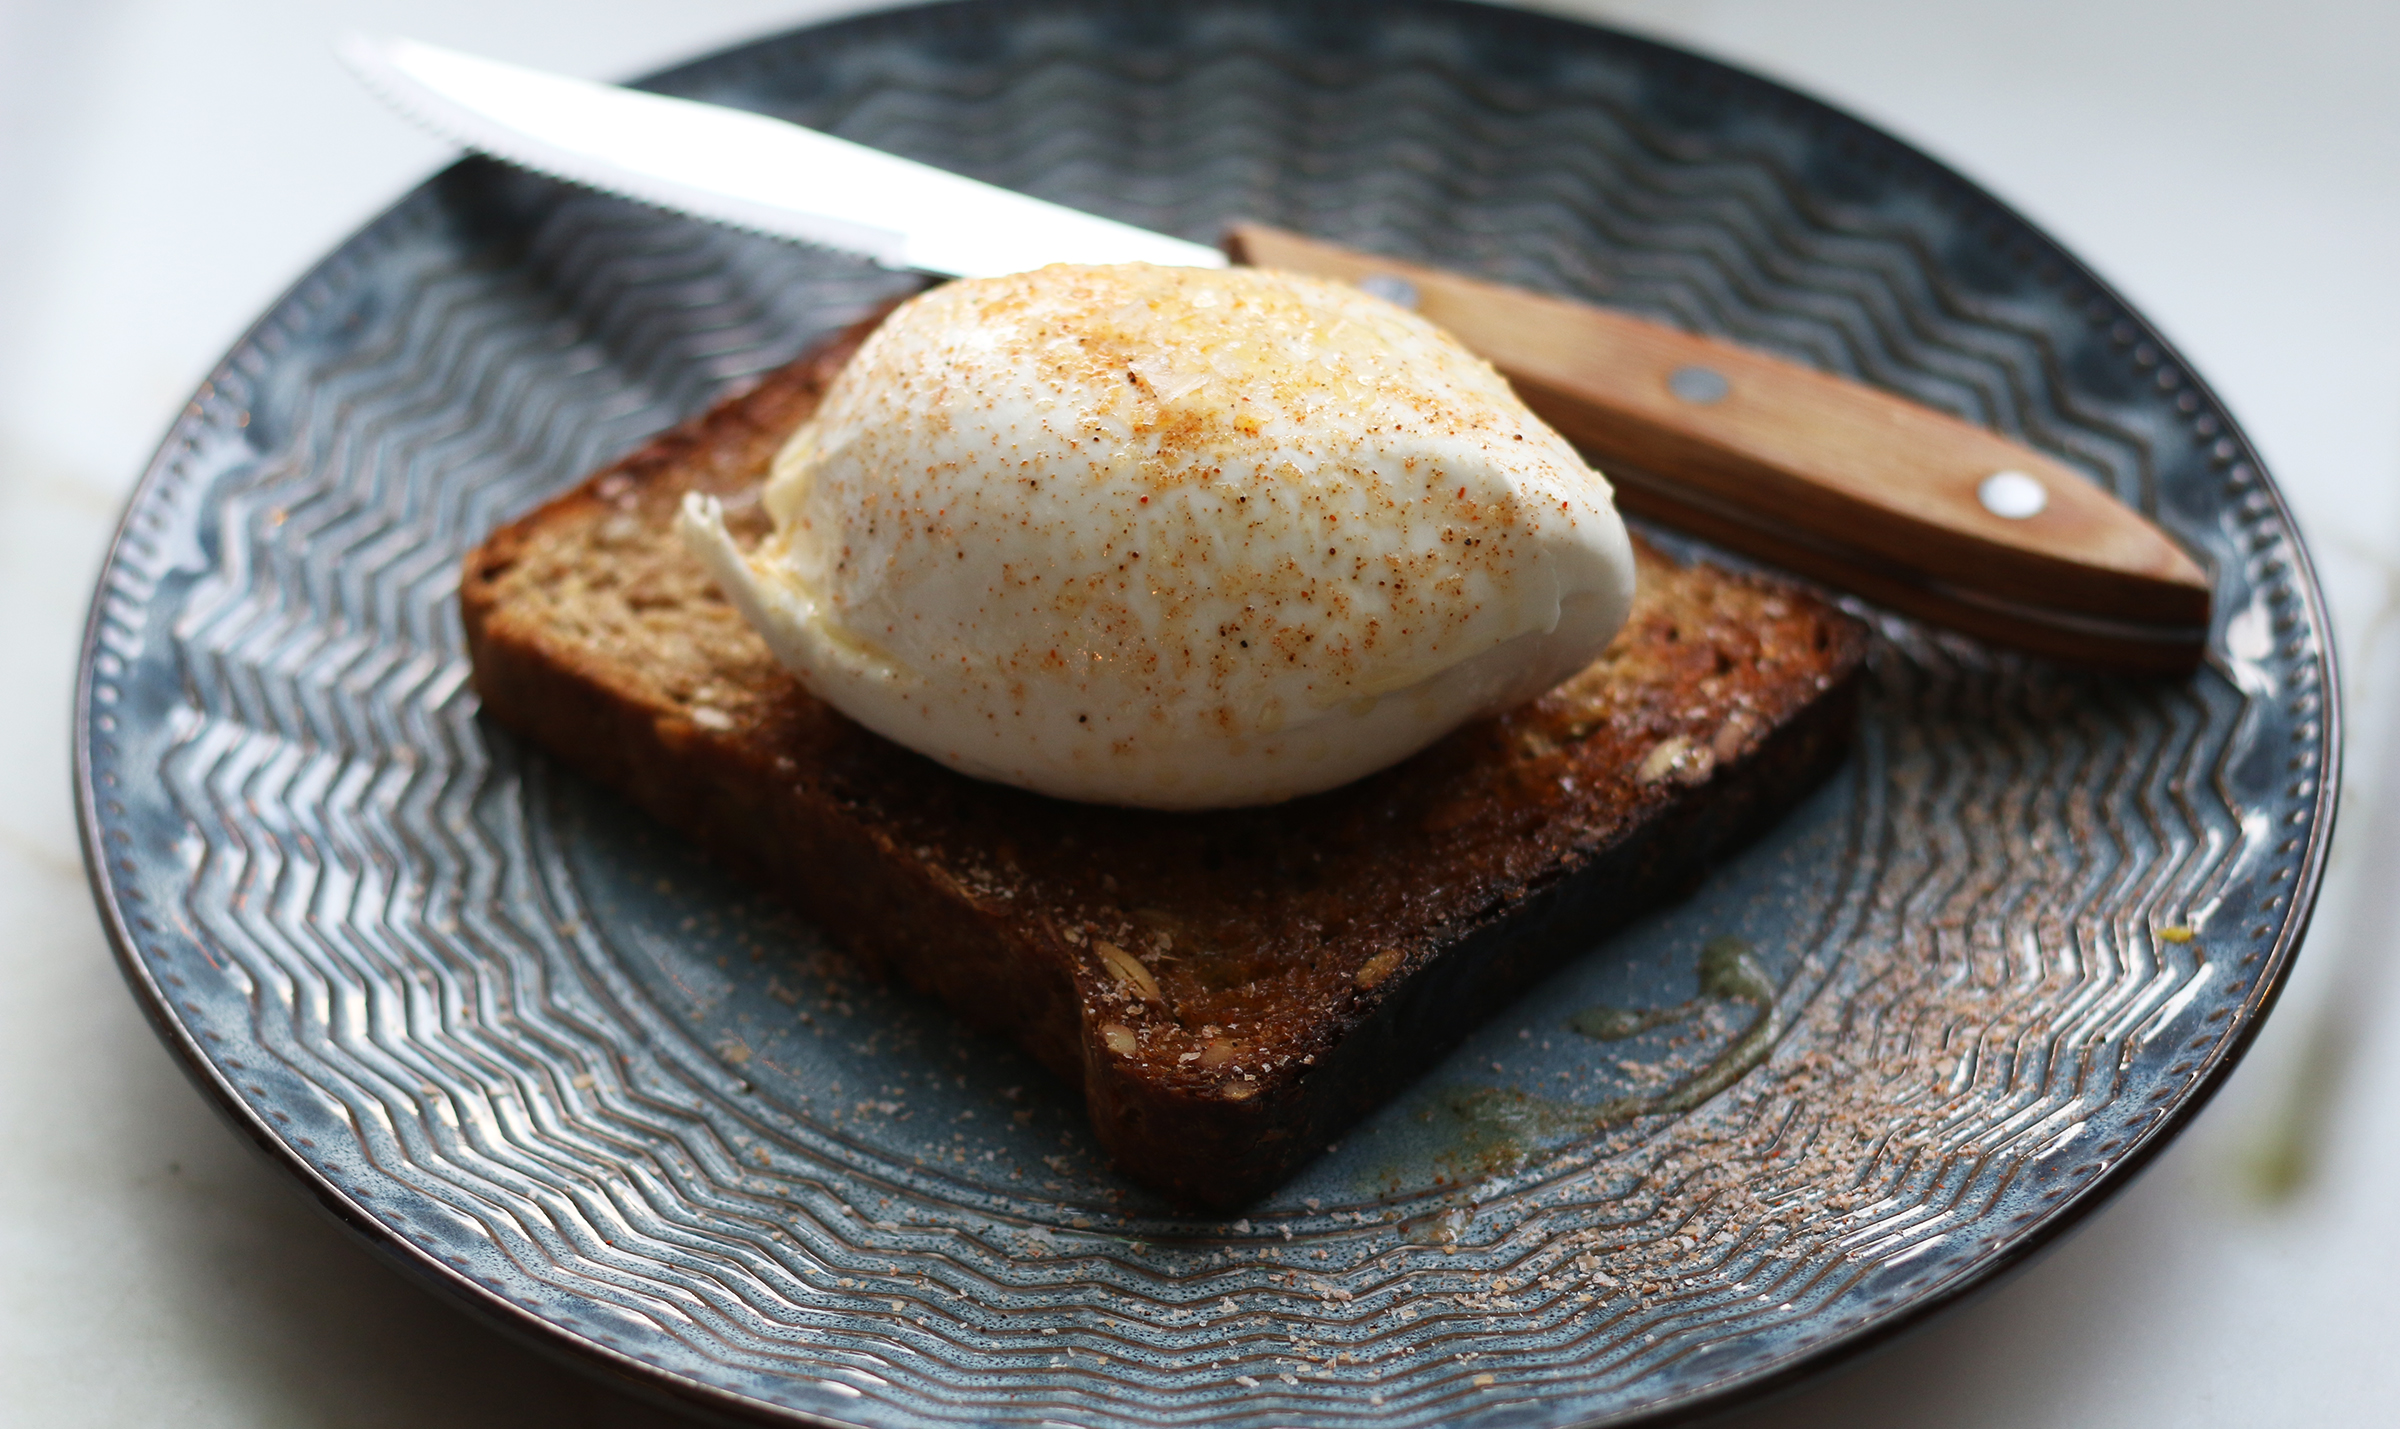 Milk & Honey :  Fresh Burrata, Grilled Seven Grain Bread, Local Honey, XVirgin, Smoked Chili Salt